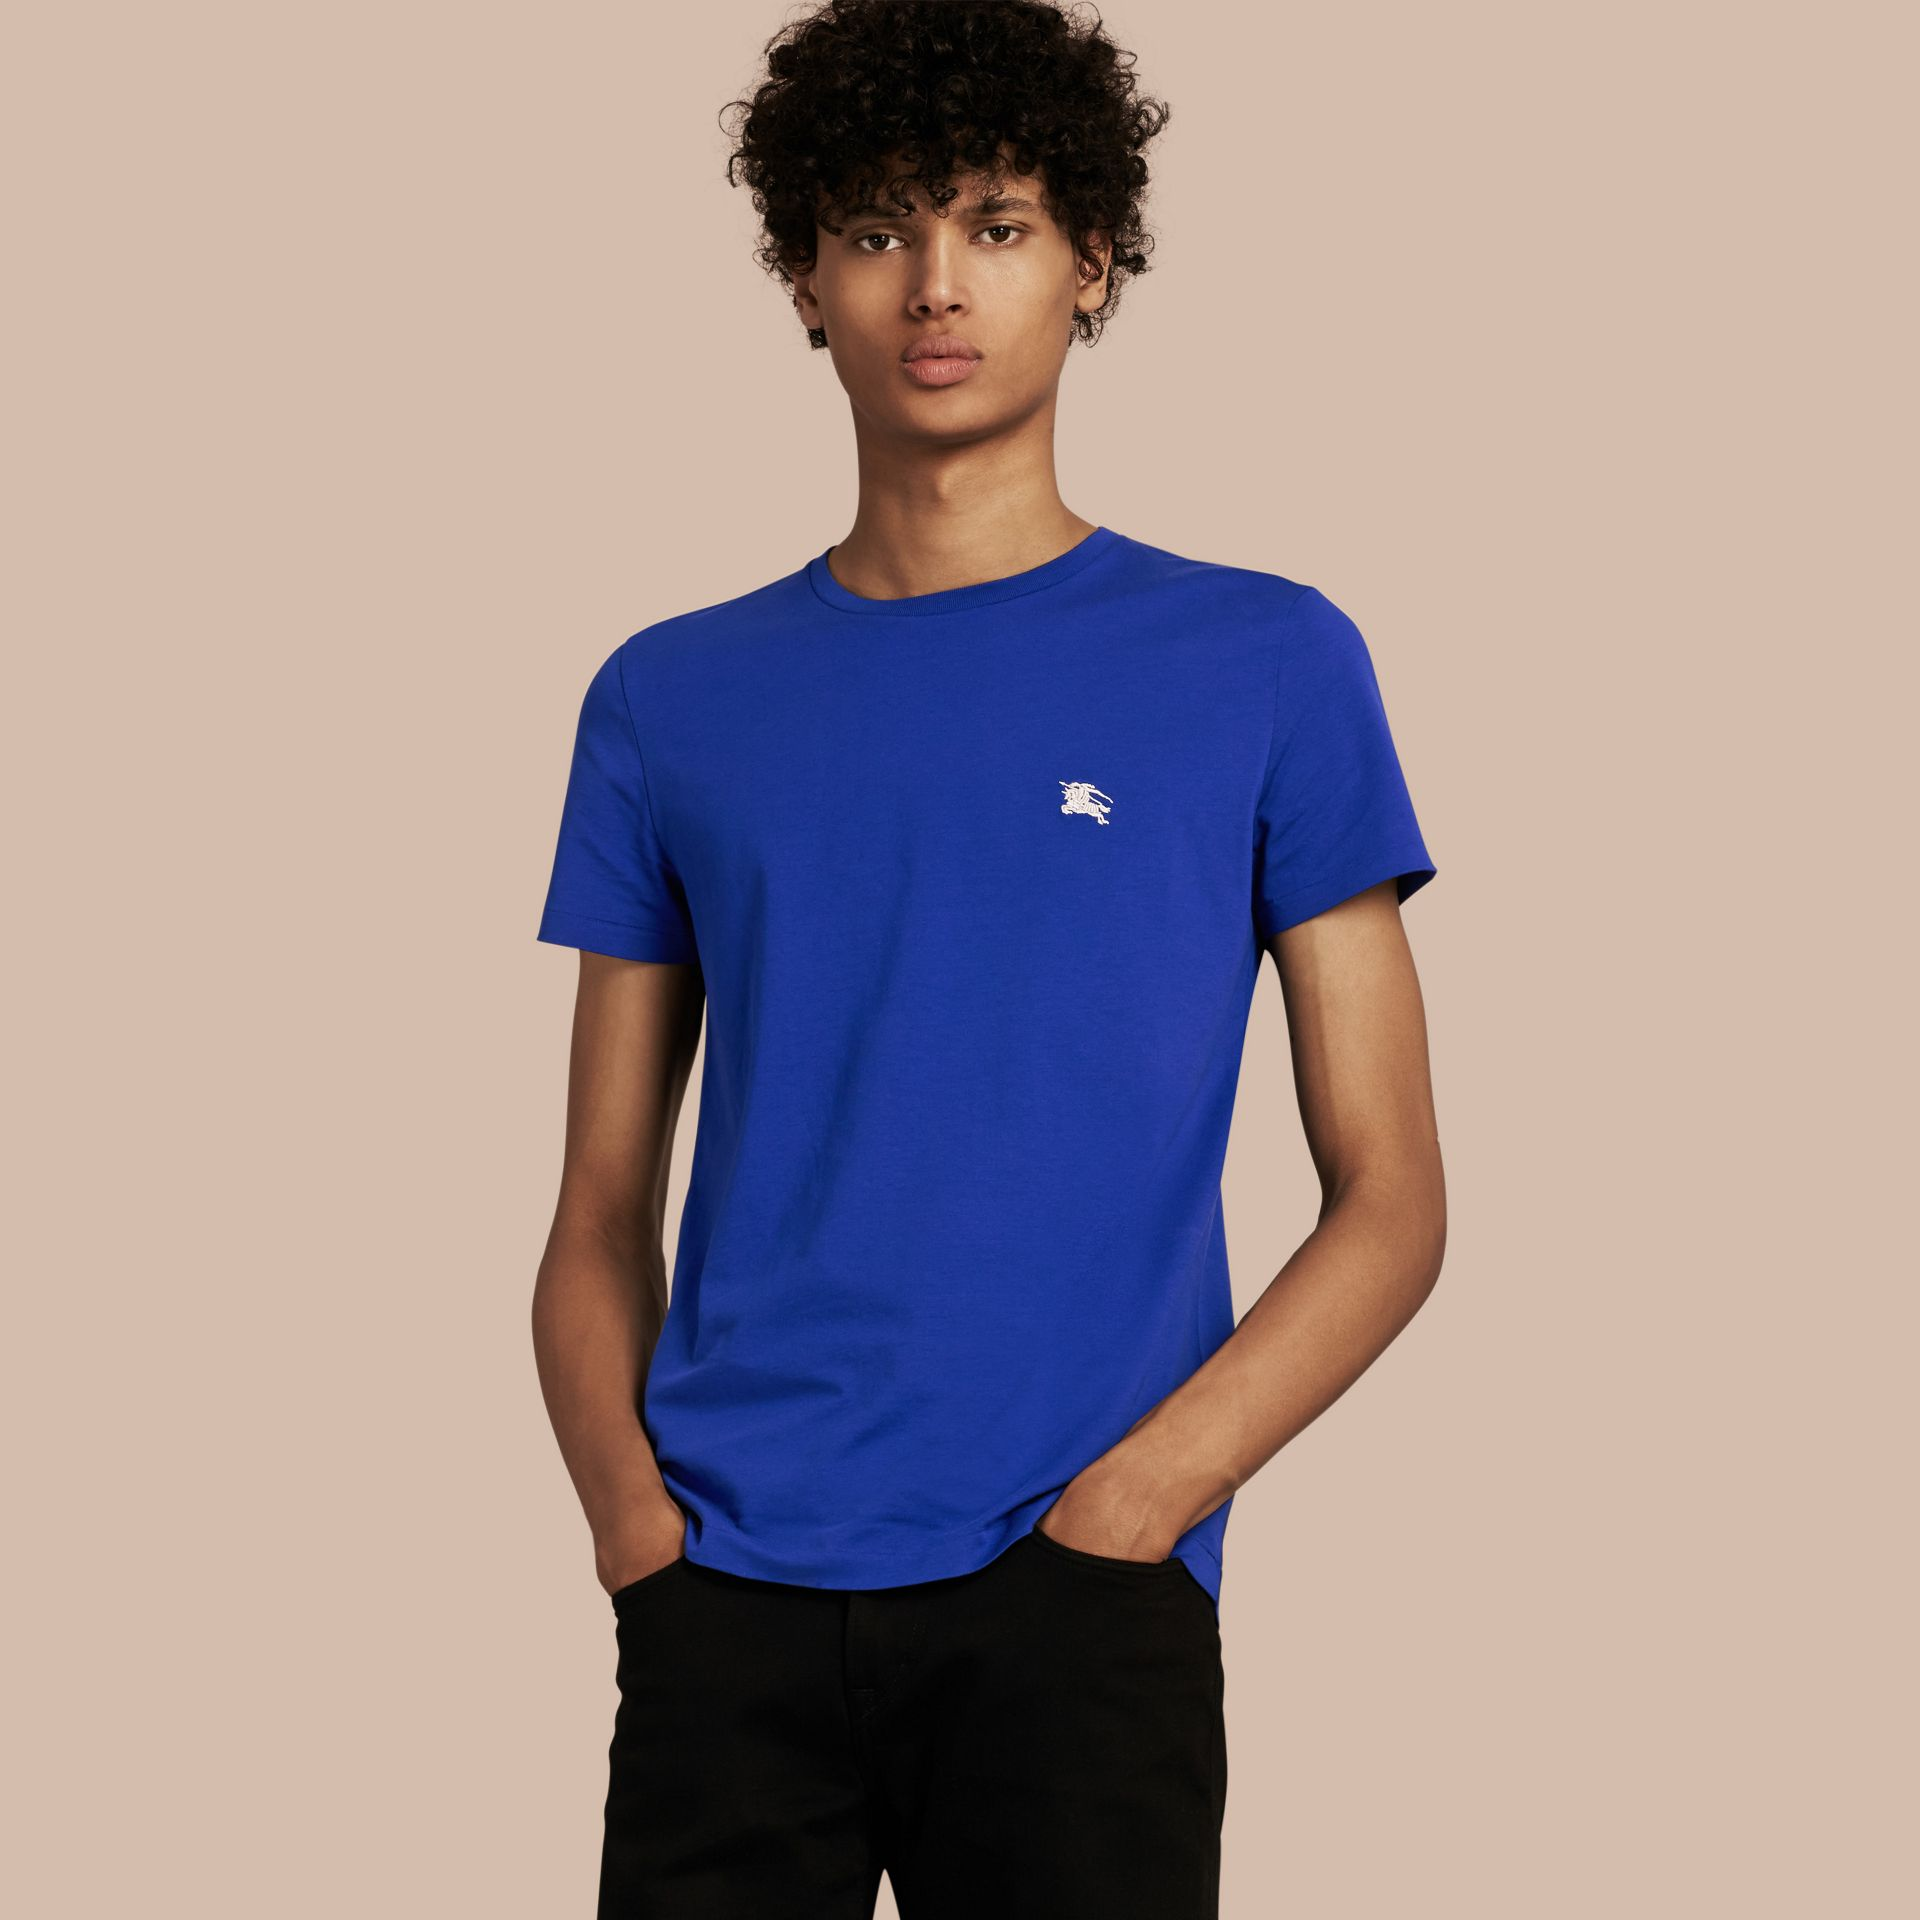 Cotton Jersey T-shirt in Bright Lapis - Men | Burberry - gallery image 1